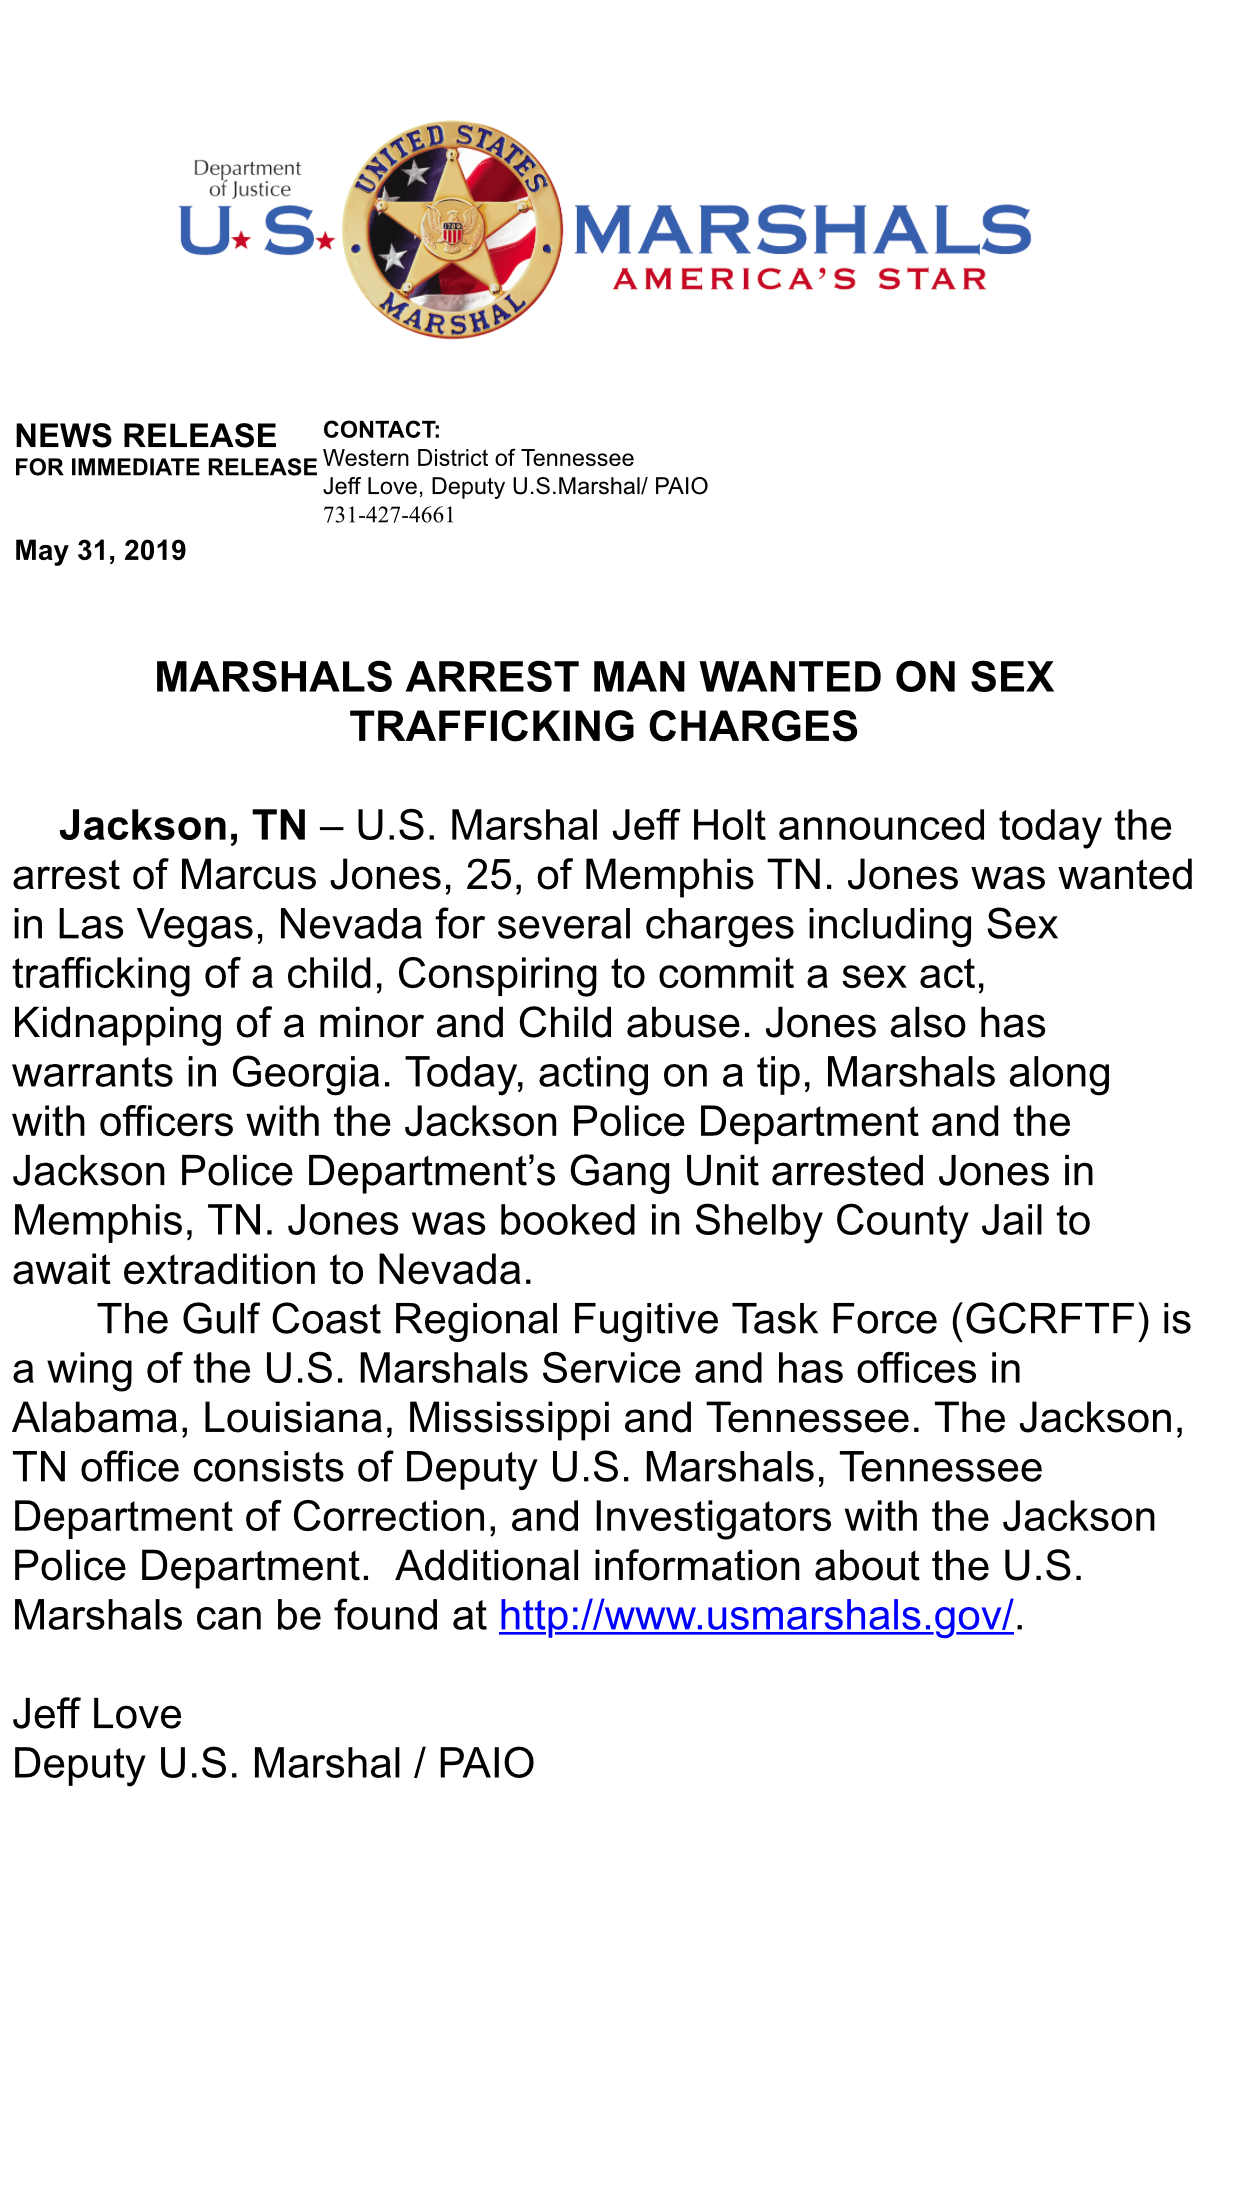 MARSHALS ARREST MAN WANTED ON SEX TRAFFICKING CHARGES